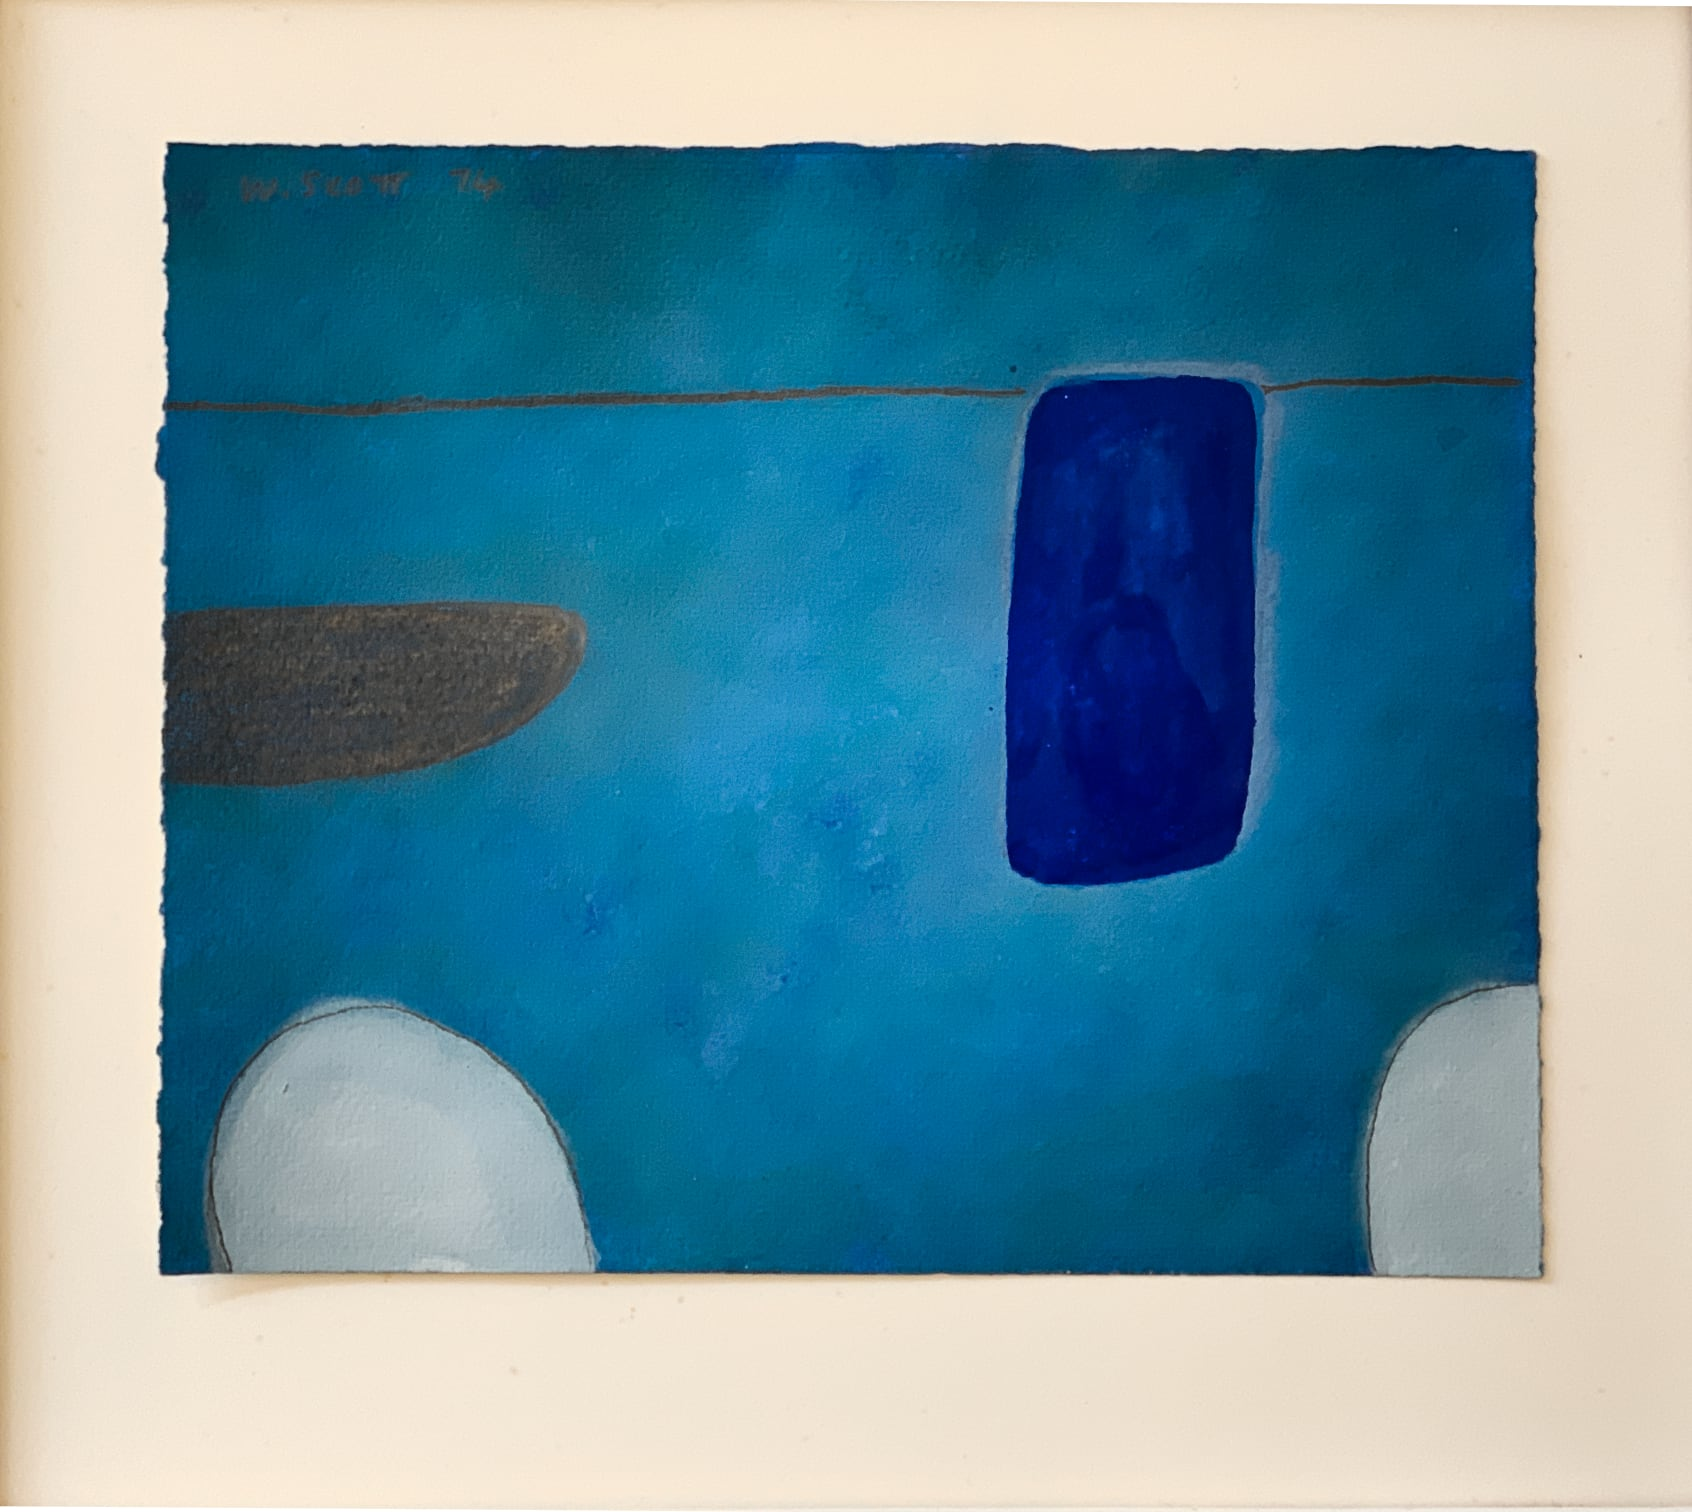 William Scott - Still Life Abstracted 1st Theme,  in blue No XLVI/L